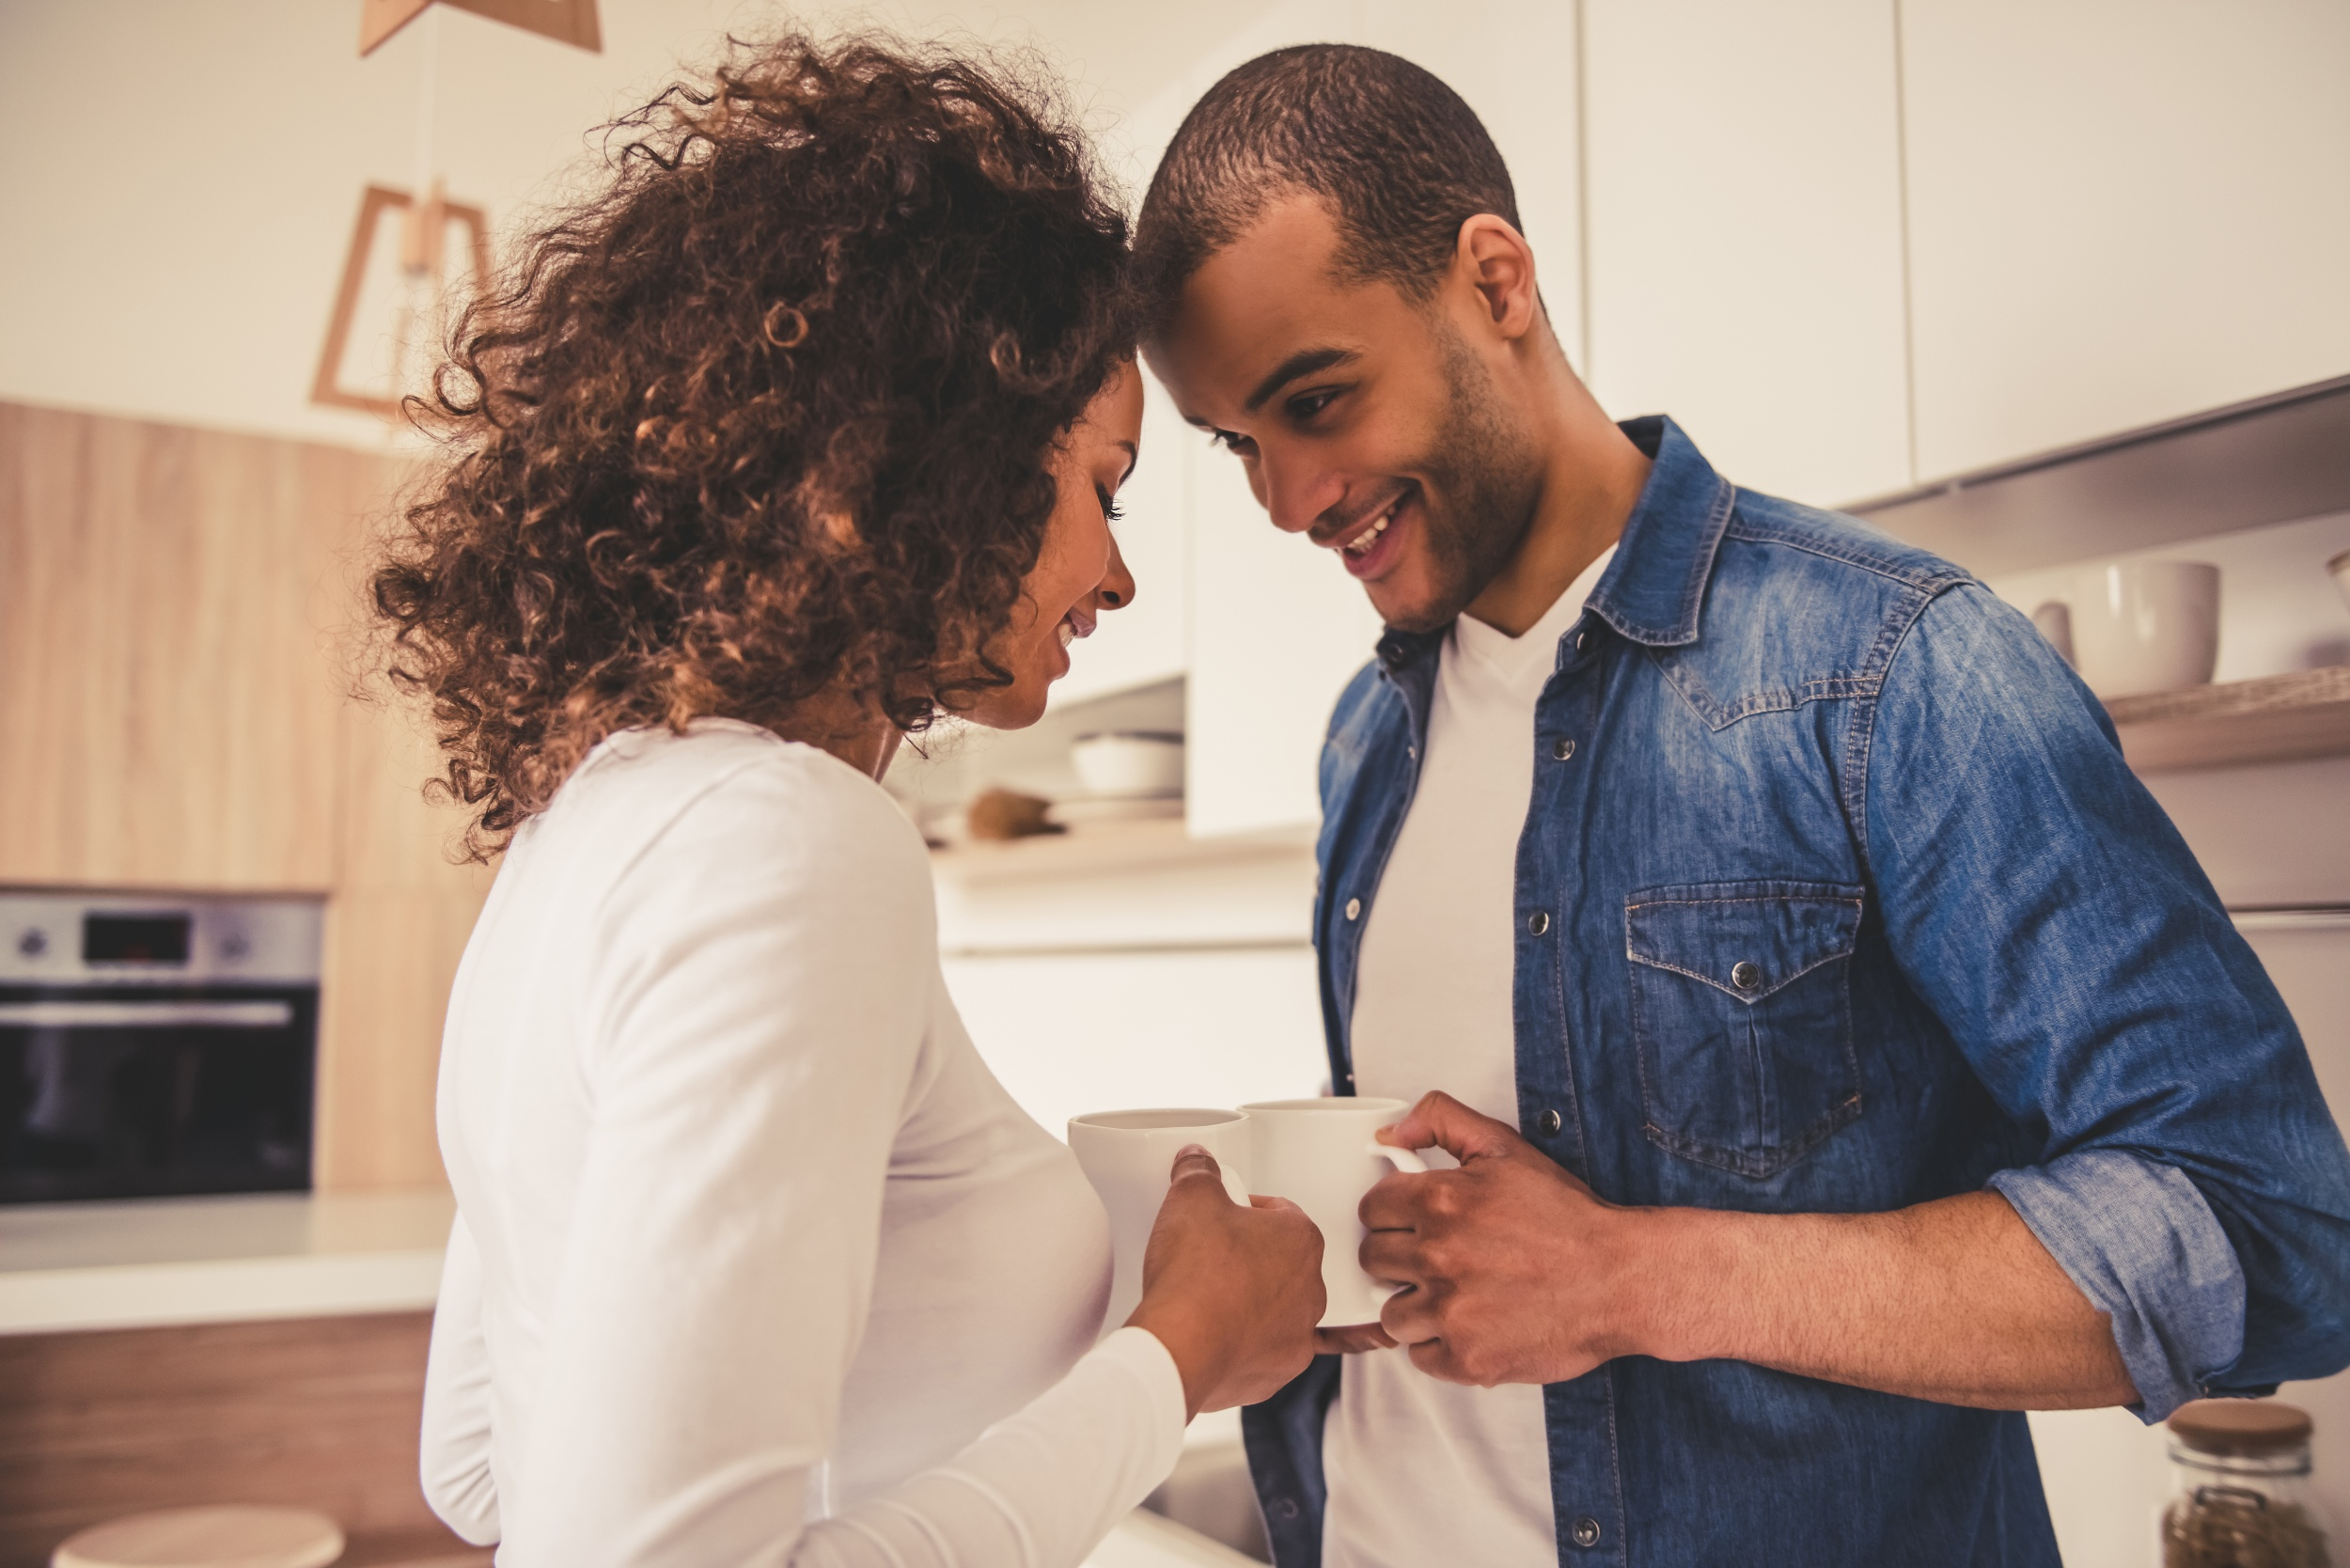 the-easiest-way-to-improve-your-relationship